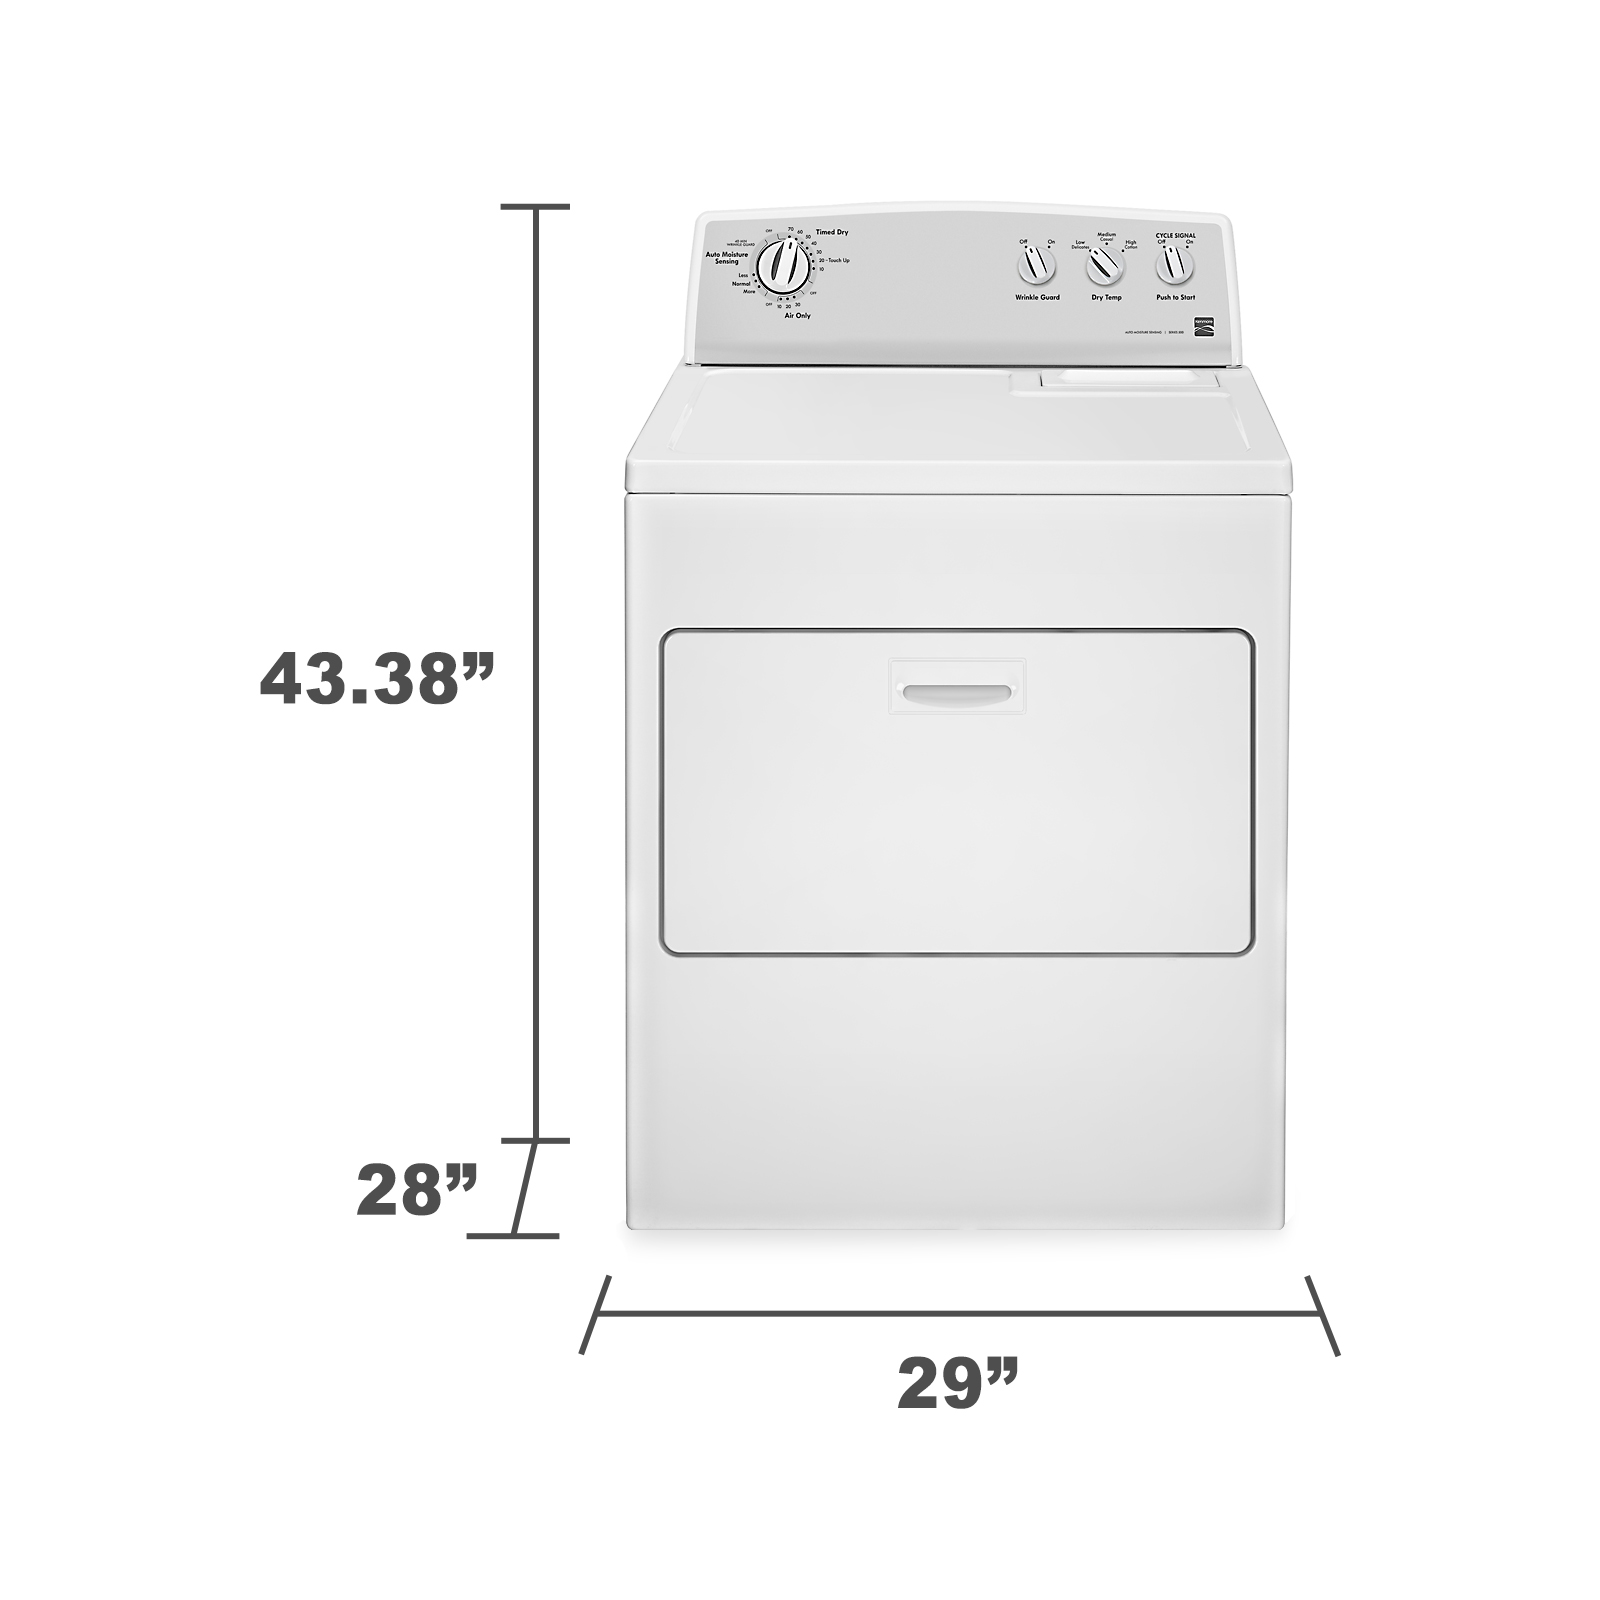 Kenmore 7.0 cu. ft. Electric Dryer w/ SmartDry™ - White